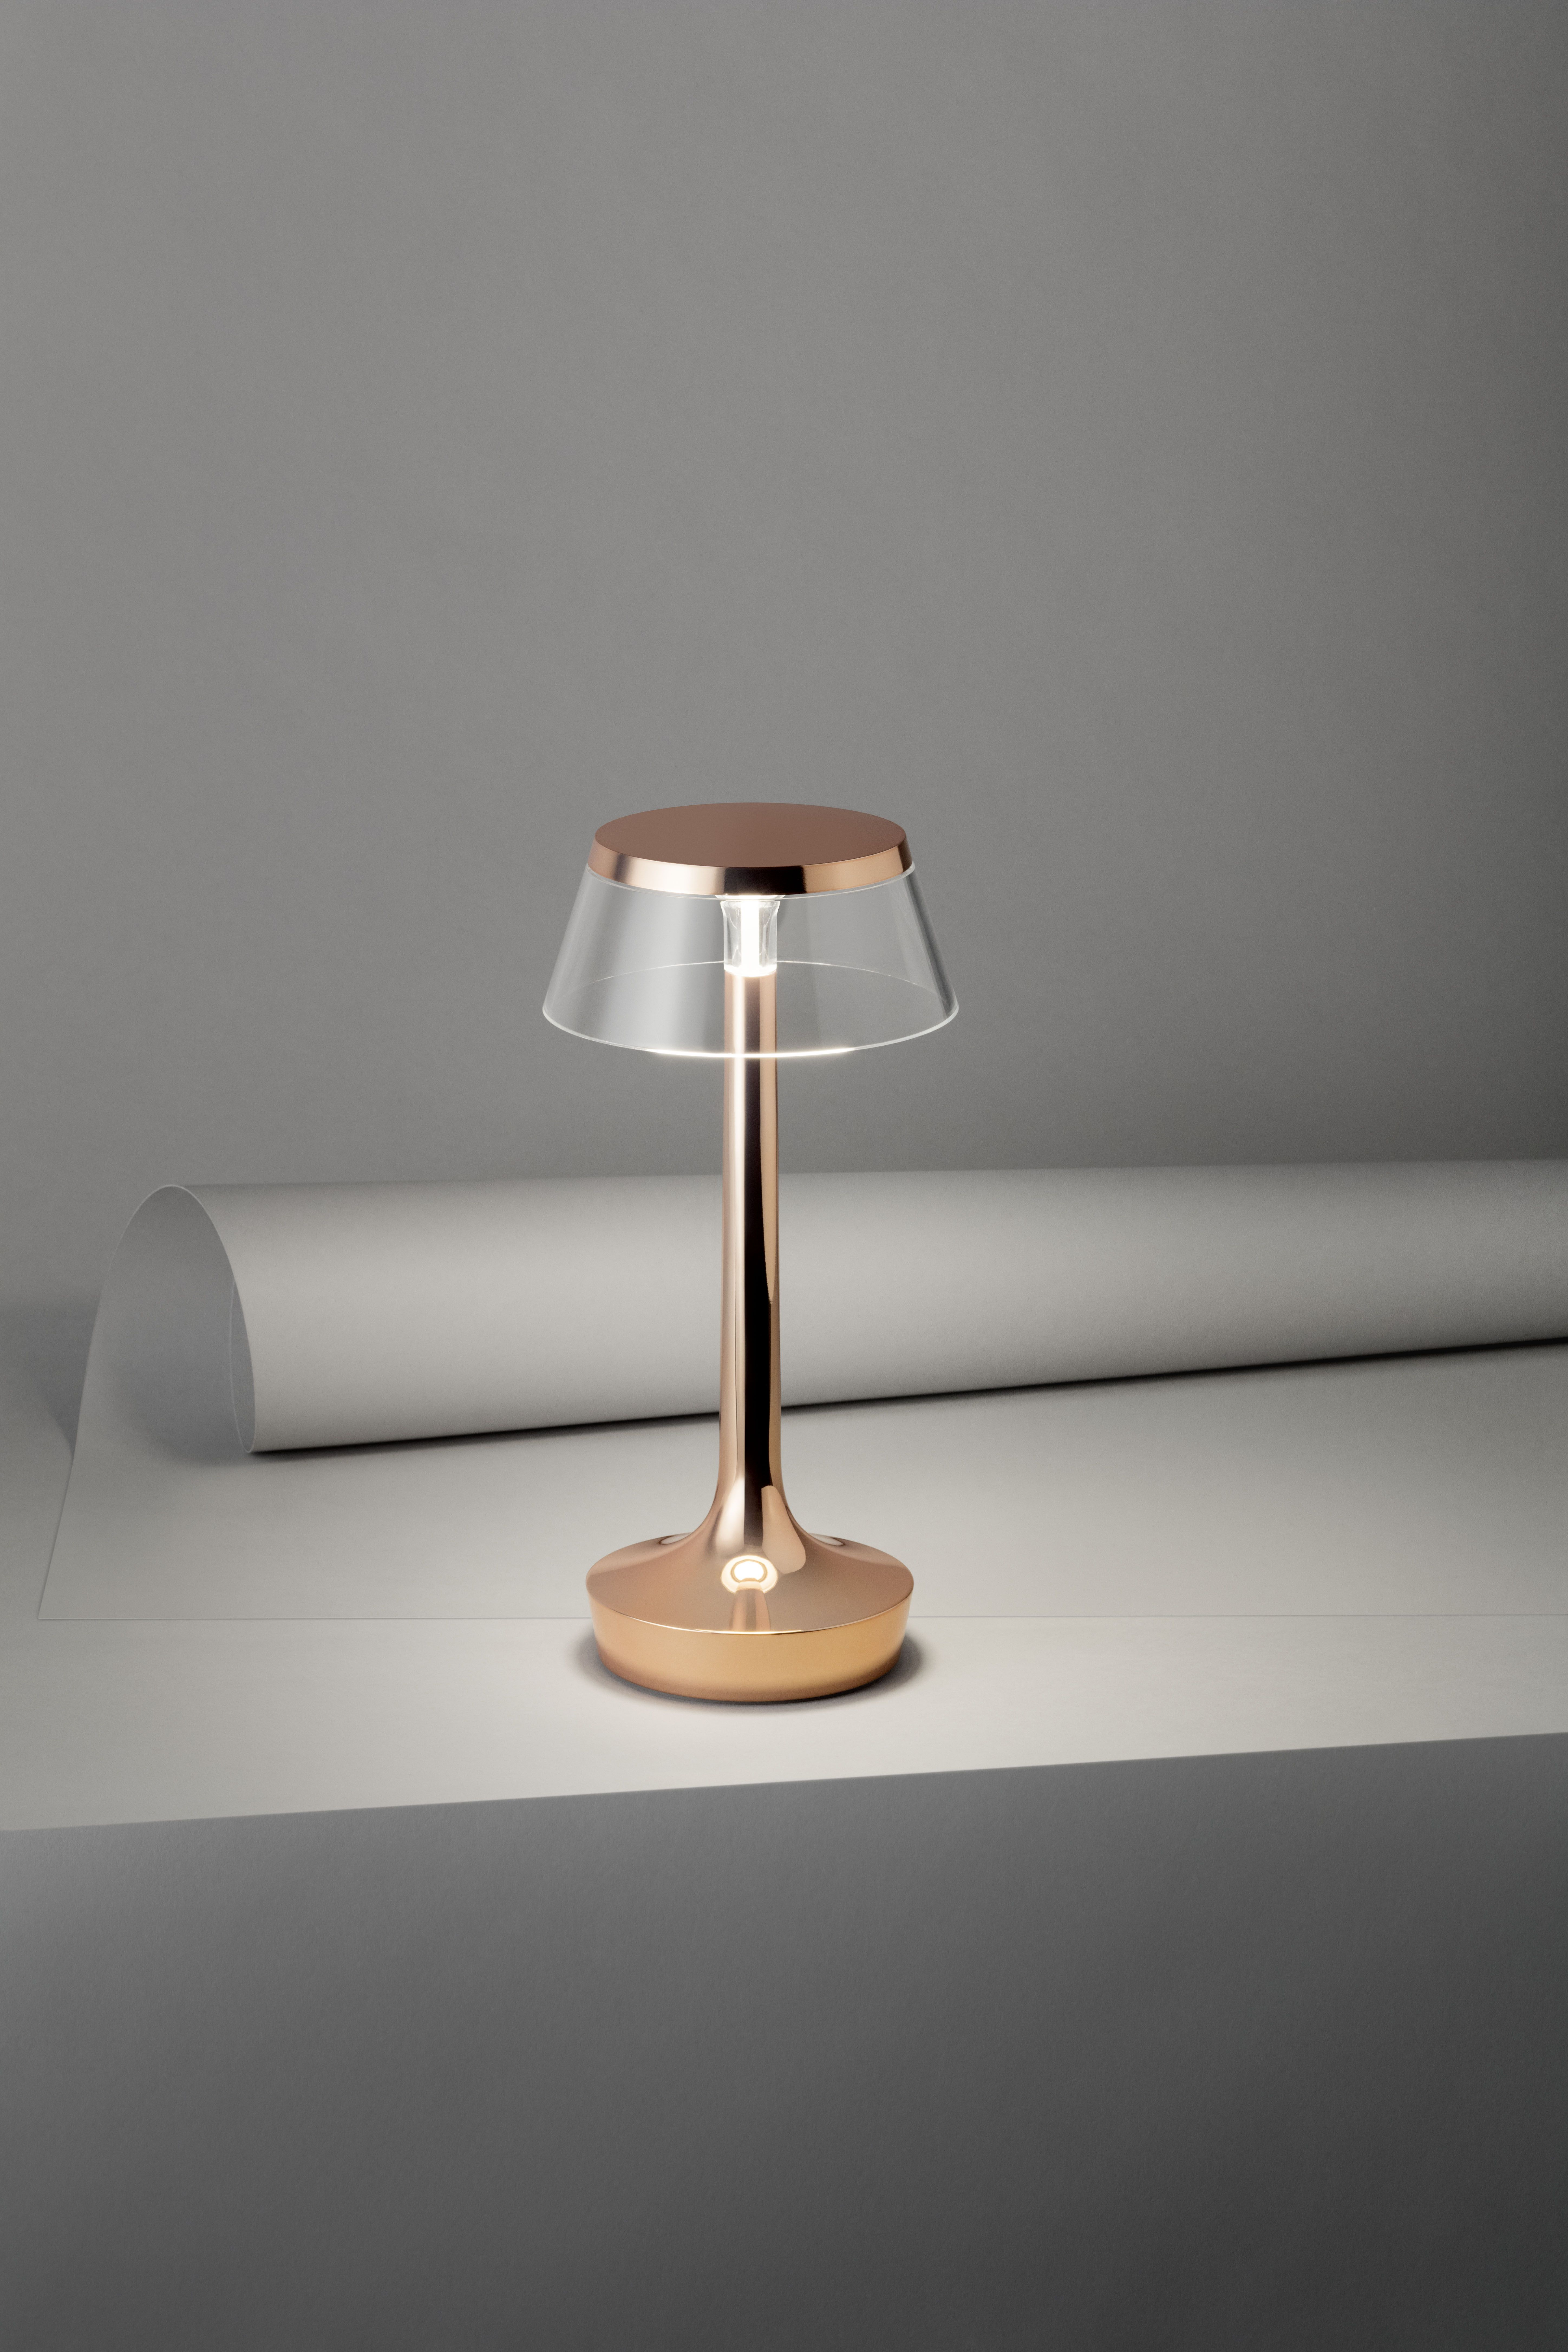 Buy Online Bon Jour Unplugged By Flos, Led Desk Lamp With Rechargeable  Battery Design Philippe Starck, Home Collection   Table Collection